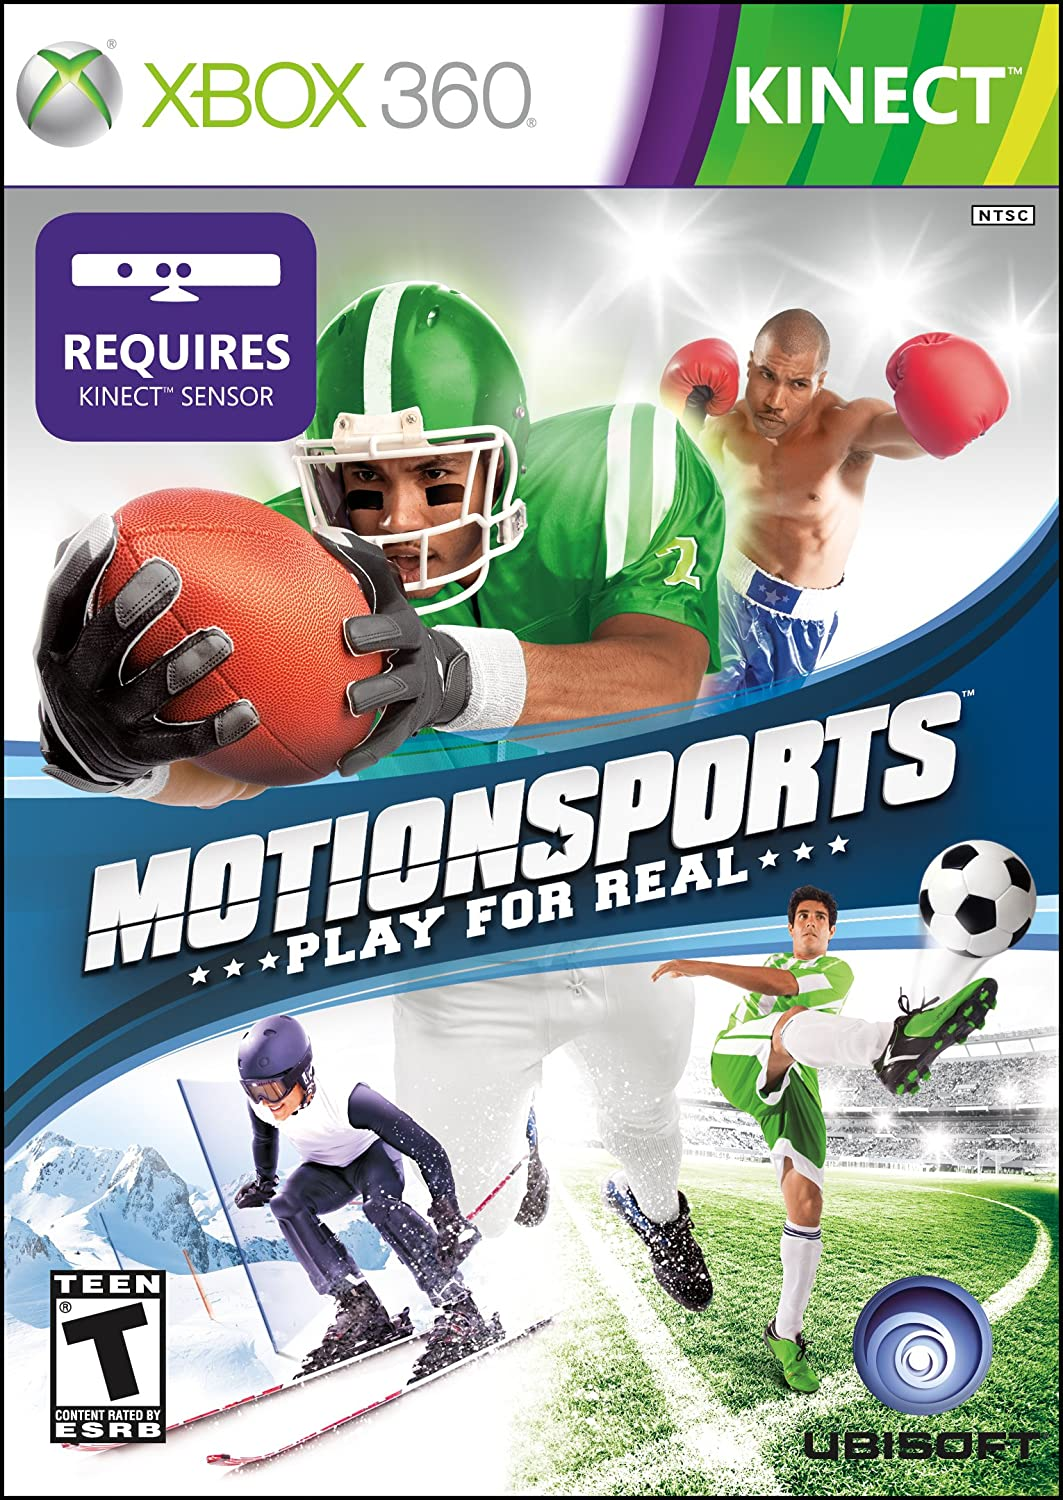 MotionSports: Play Free Max 51% OFF shipping New Real For